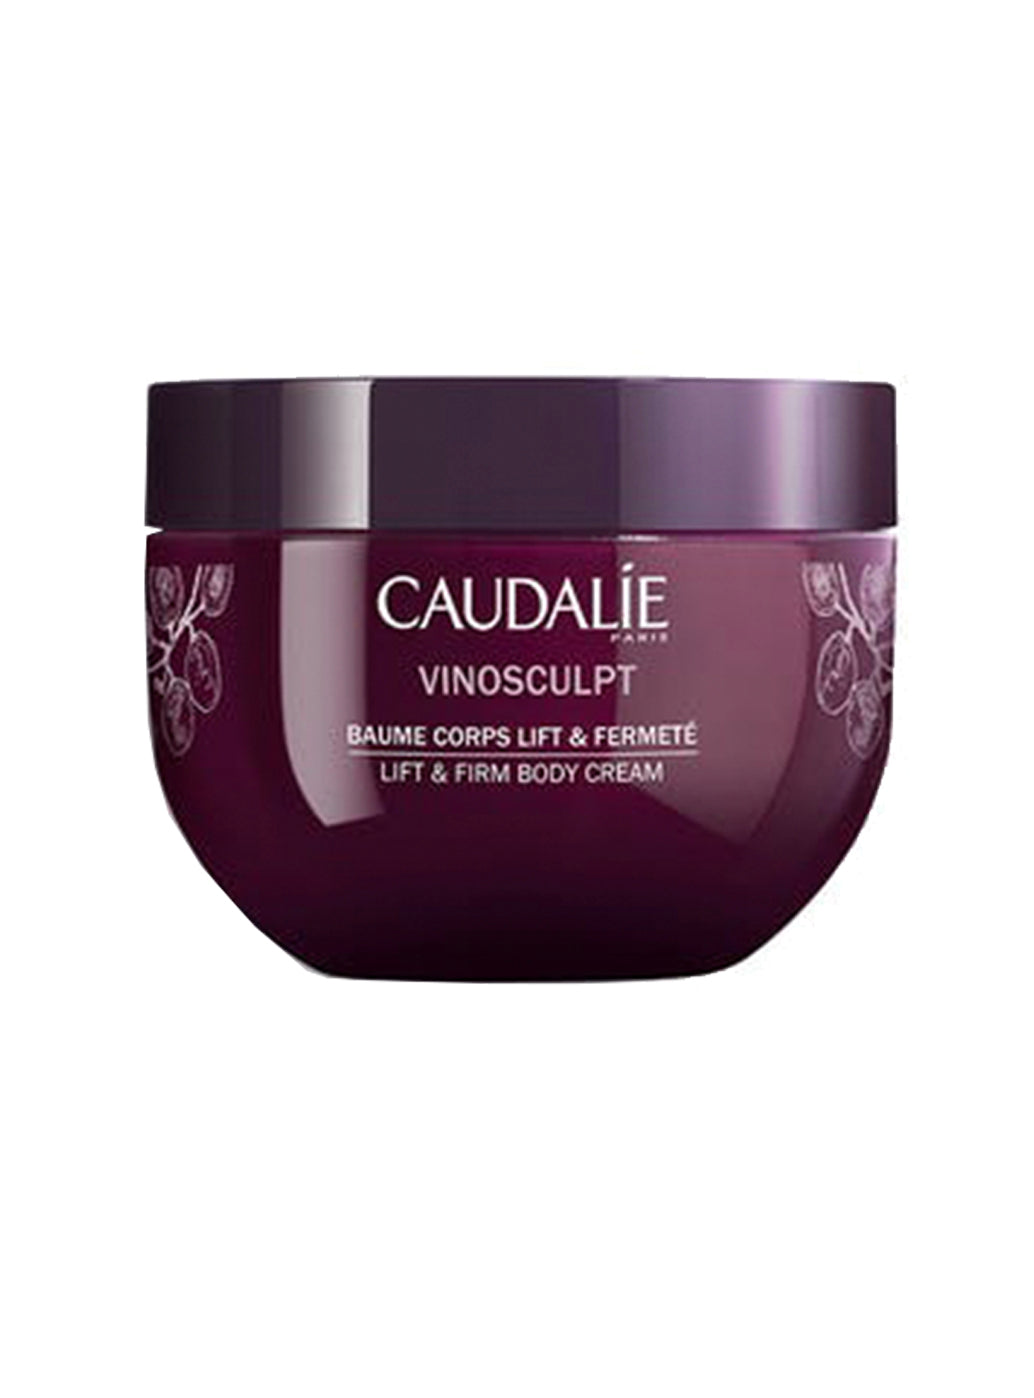 Vinosculpt Lift & Firm Body Cream